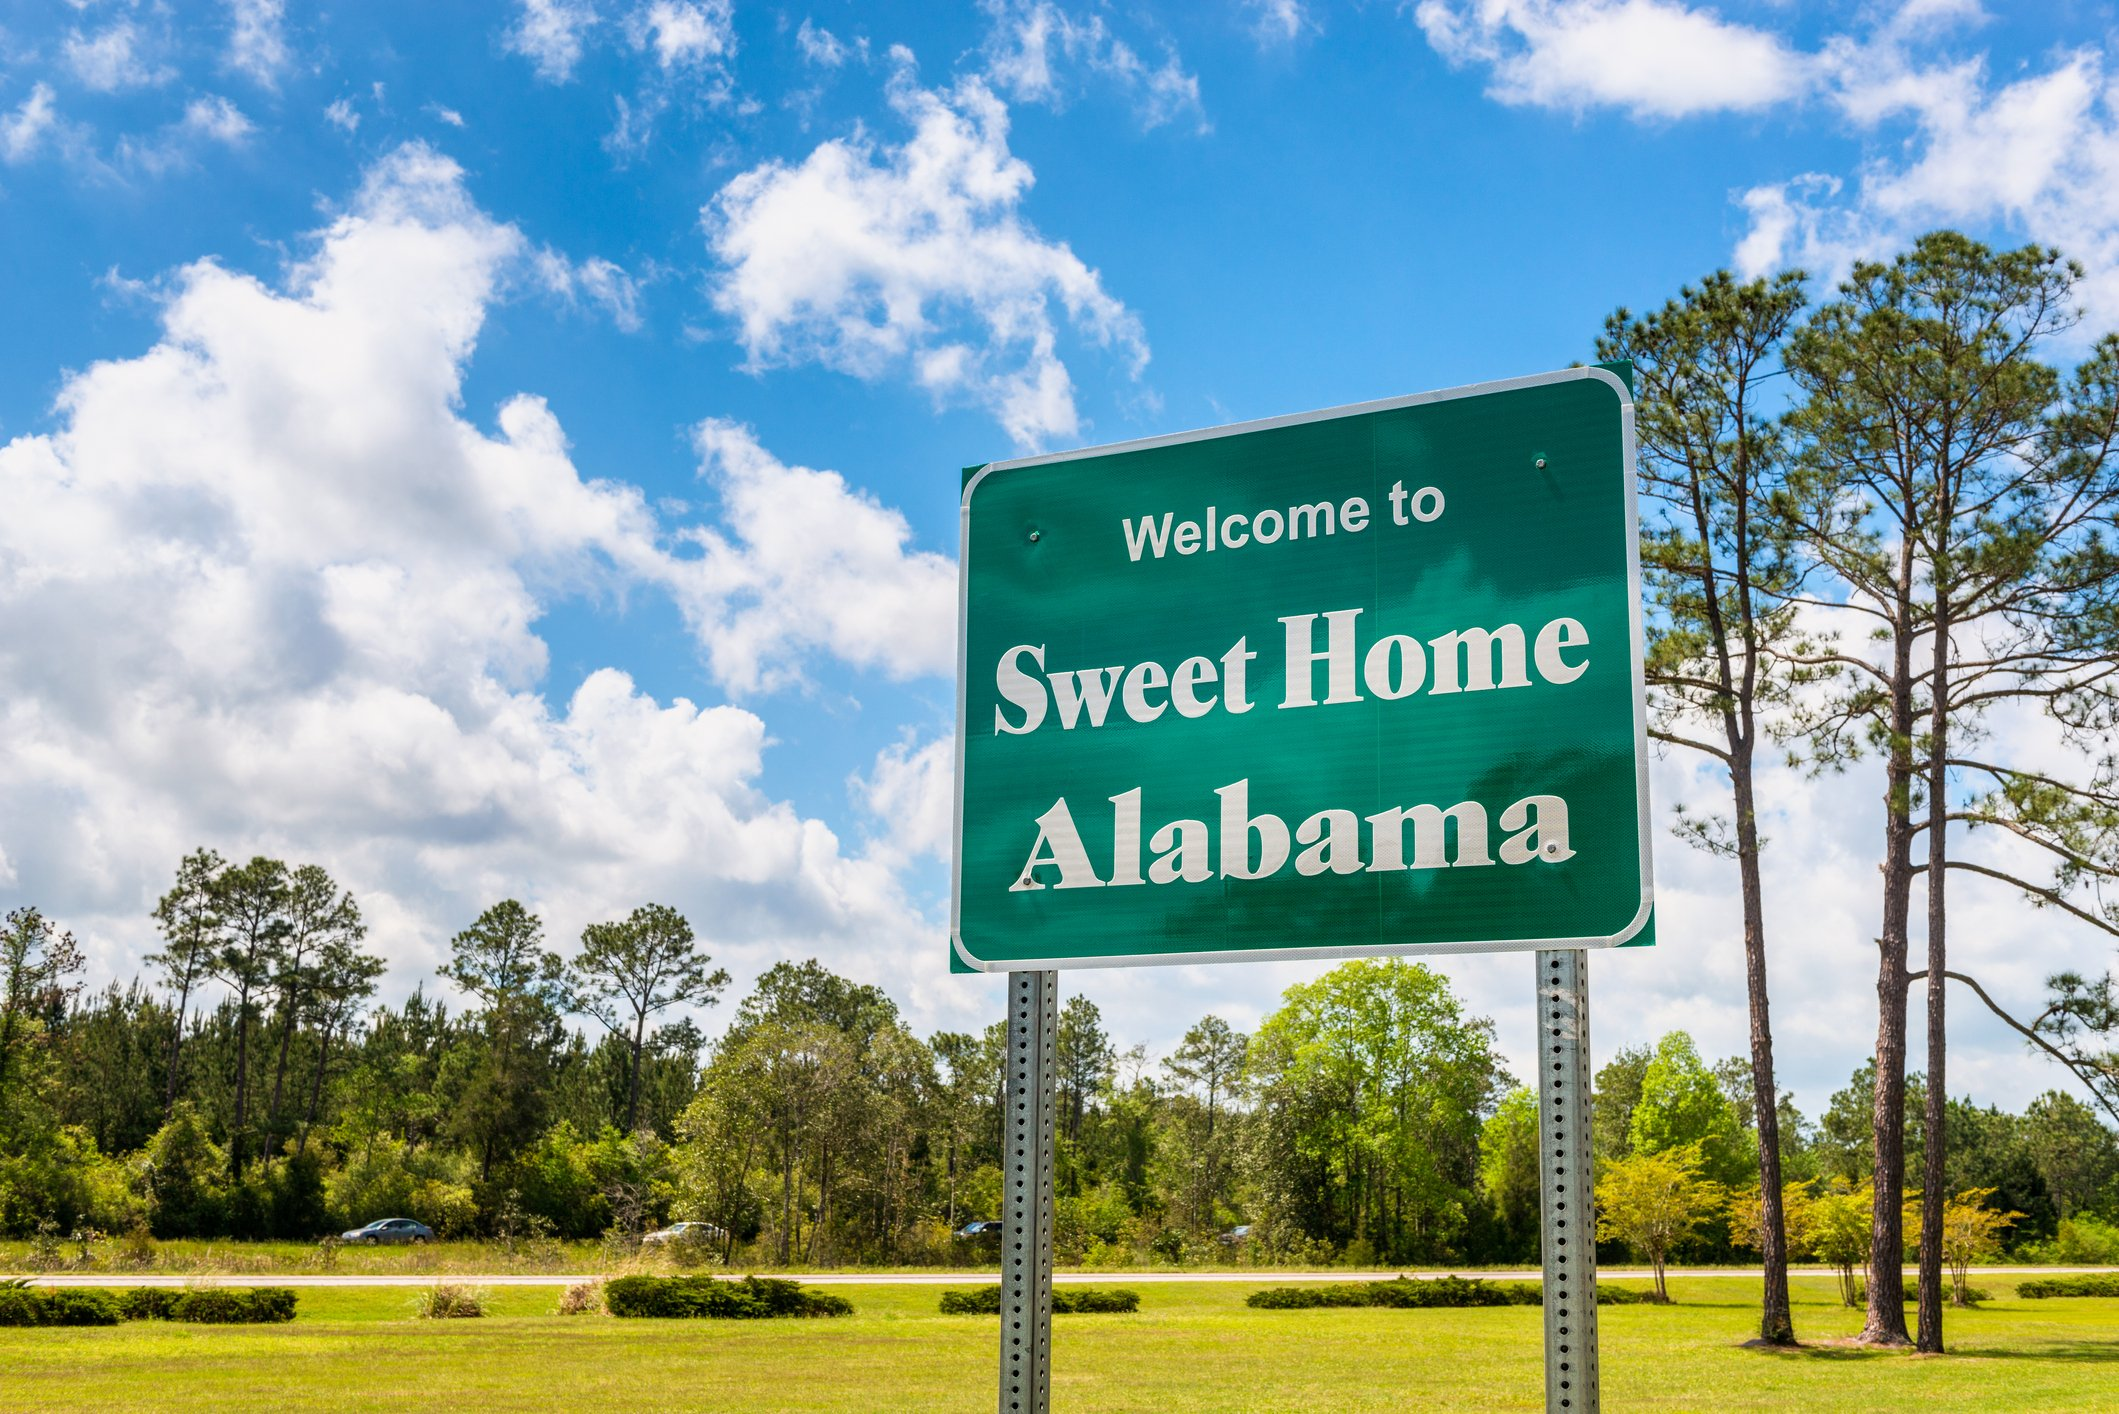 """Slide 2 of 51: Fun fact: Alabama has the largest snail population in the country. Forty-three percent of all the snails in the United States reside in Alabama. This may even be more notable than the state sign referencing the 1974 song by Lynyrd Skynyrd, """"Sweet Home Alabama."""" Take a look at the best family travel destination in each state."""